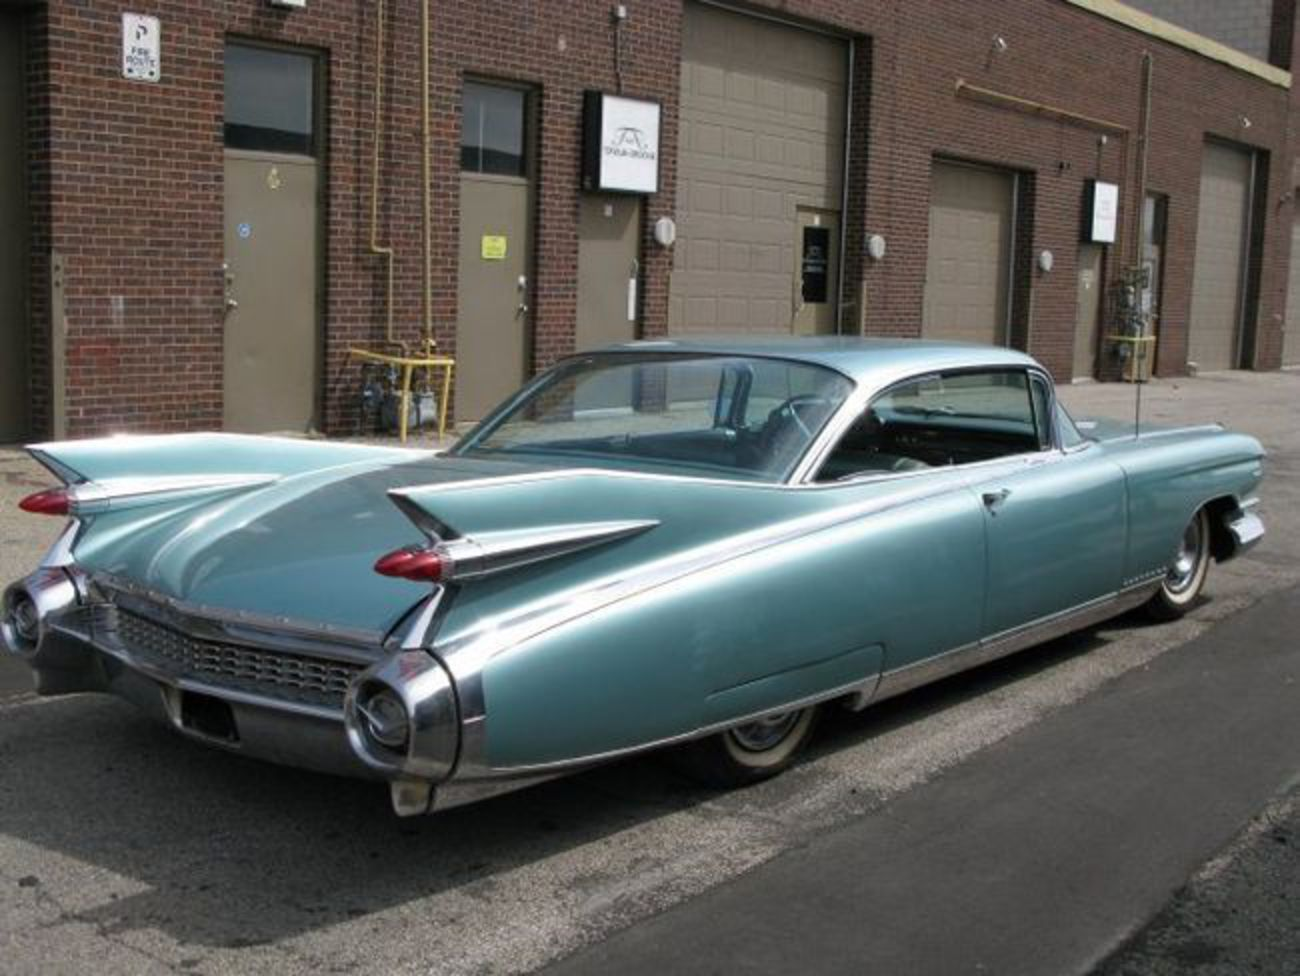 This 1959 Cadillac Eldorado Seville is number 836 of 975 ever made.